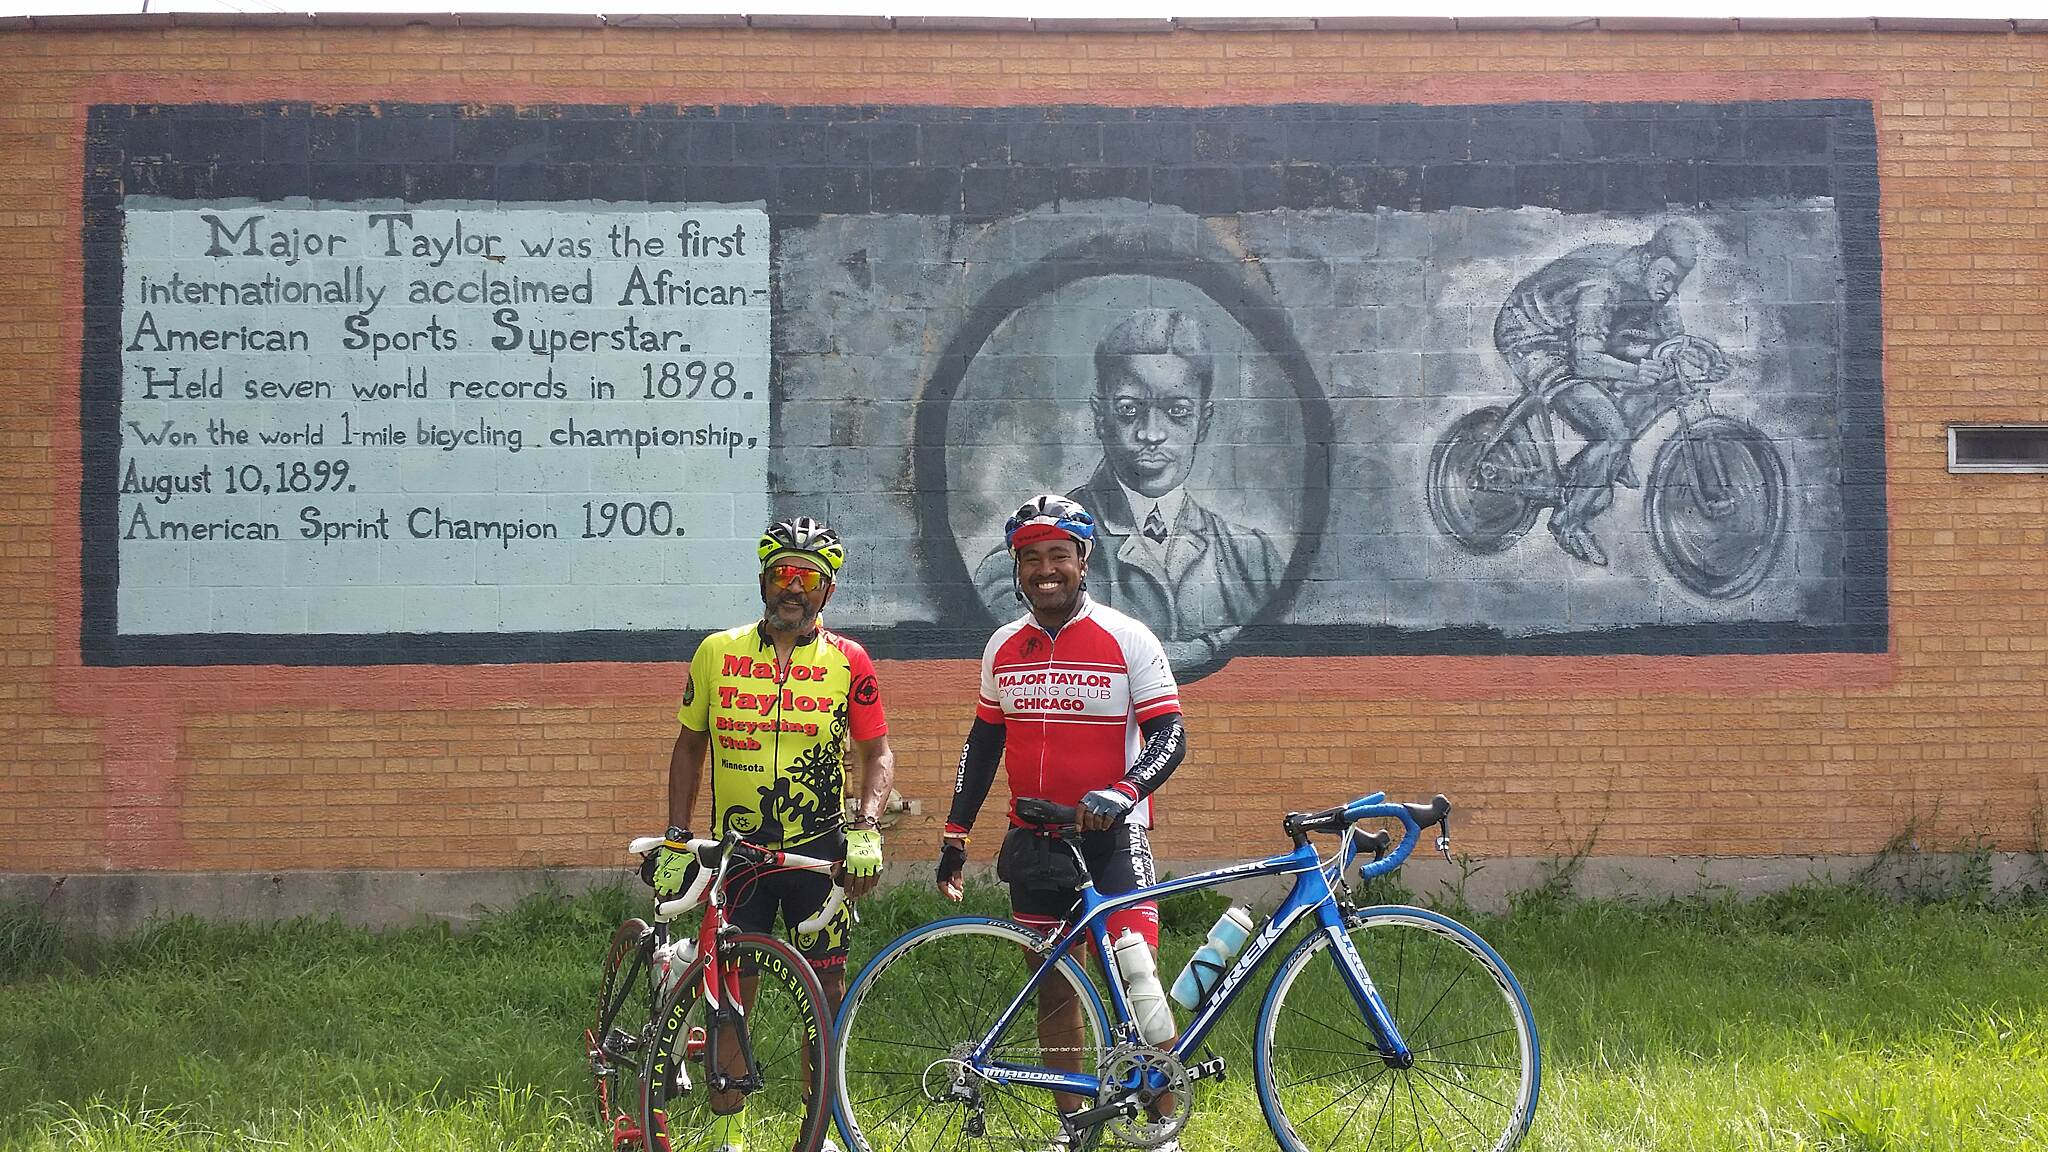 Major Taylor Trail Major Taylor Chi and MN The leaders of Major Taylor Chicago and Major Taylor Minnesota pose for a pic at the Major Taylor mural on the trail by 111th street.